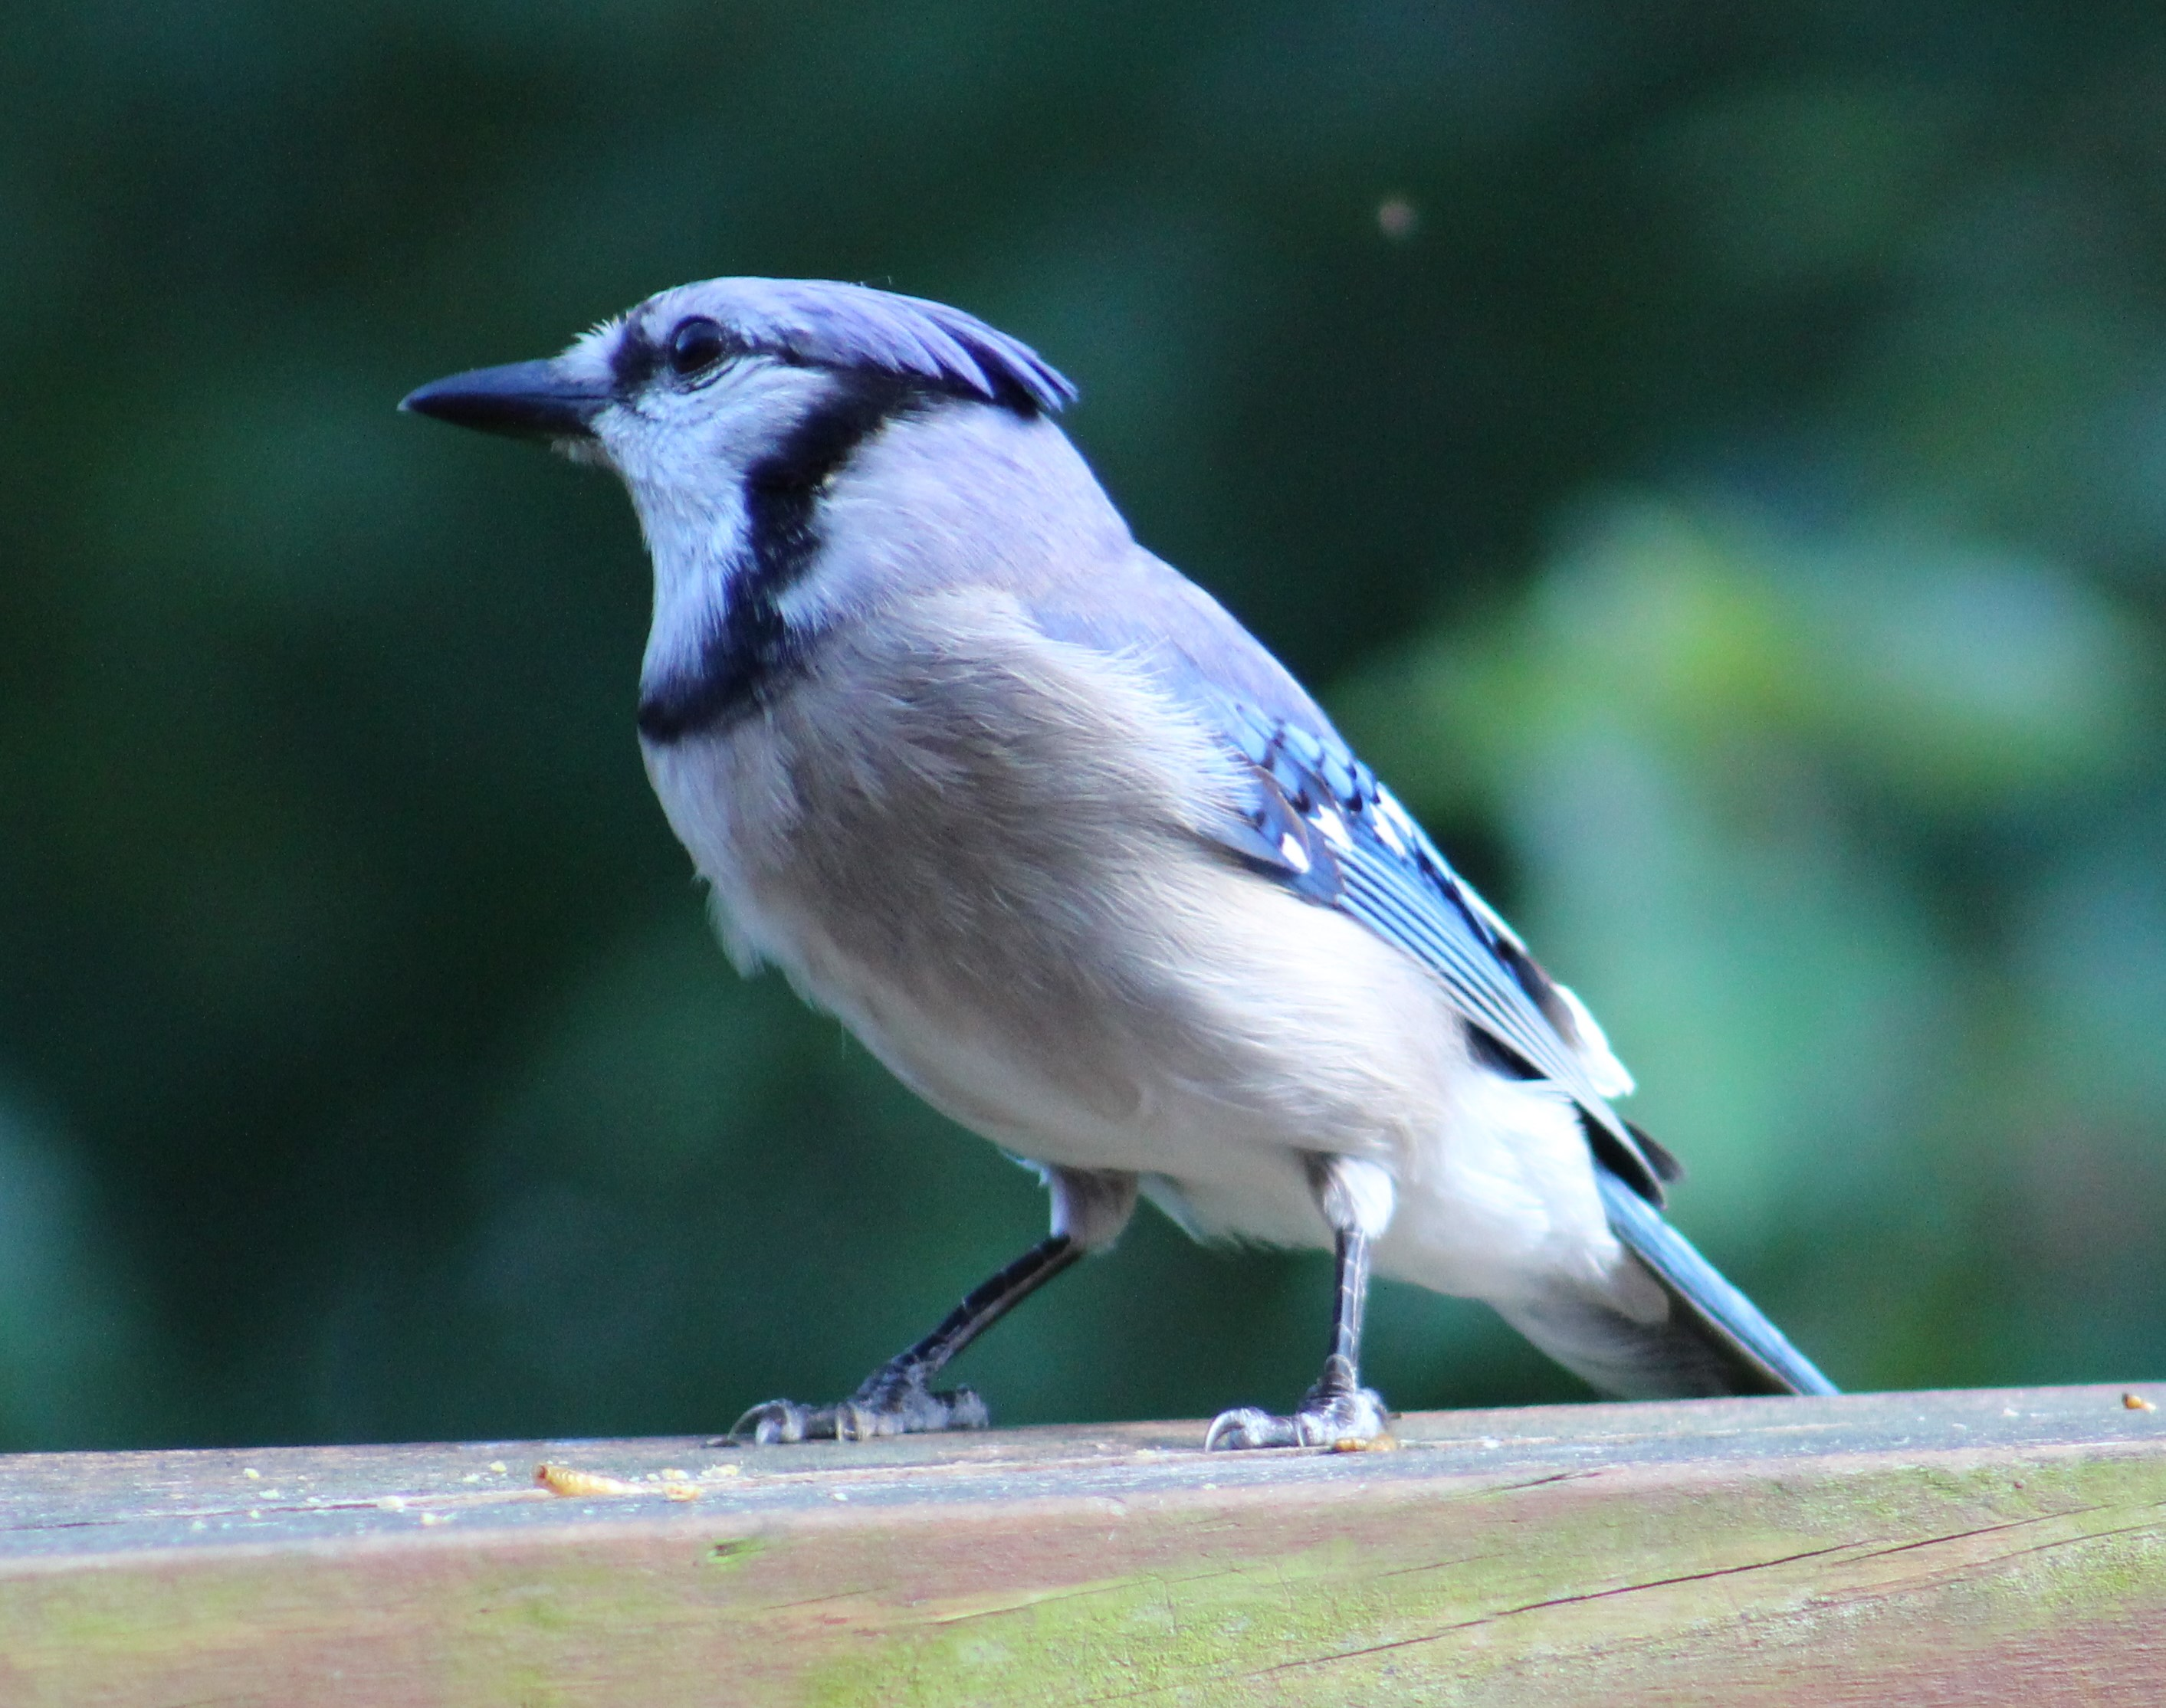 This Blue Jay resembles Donald Trump